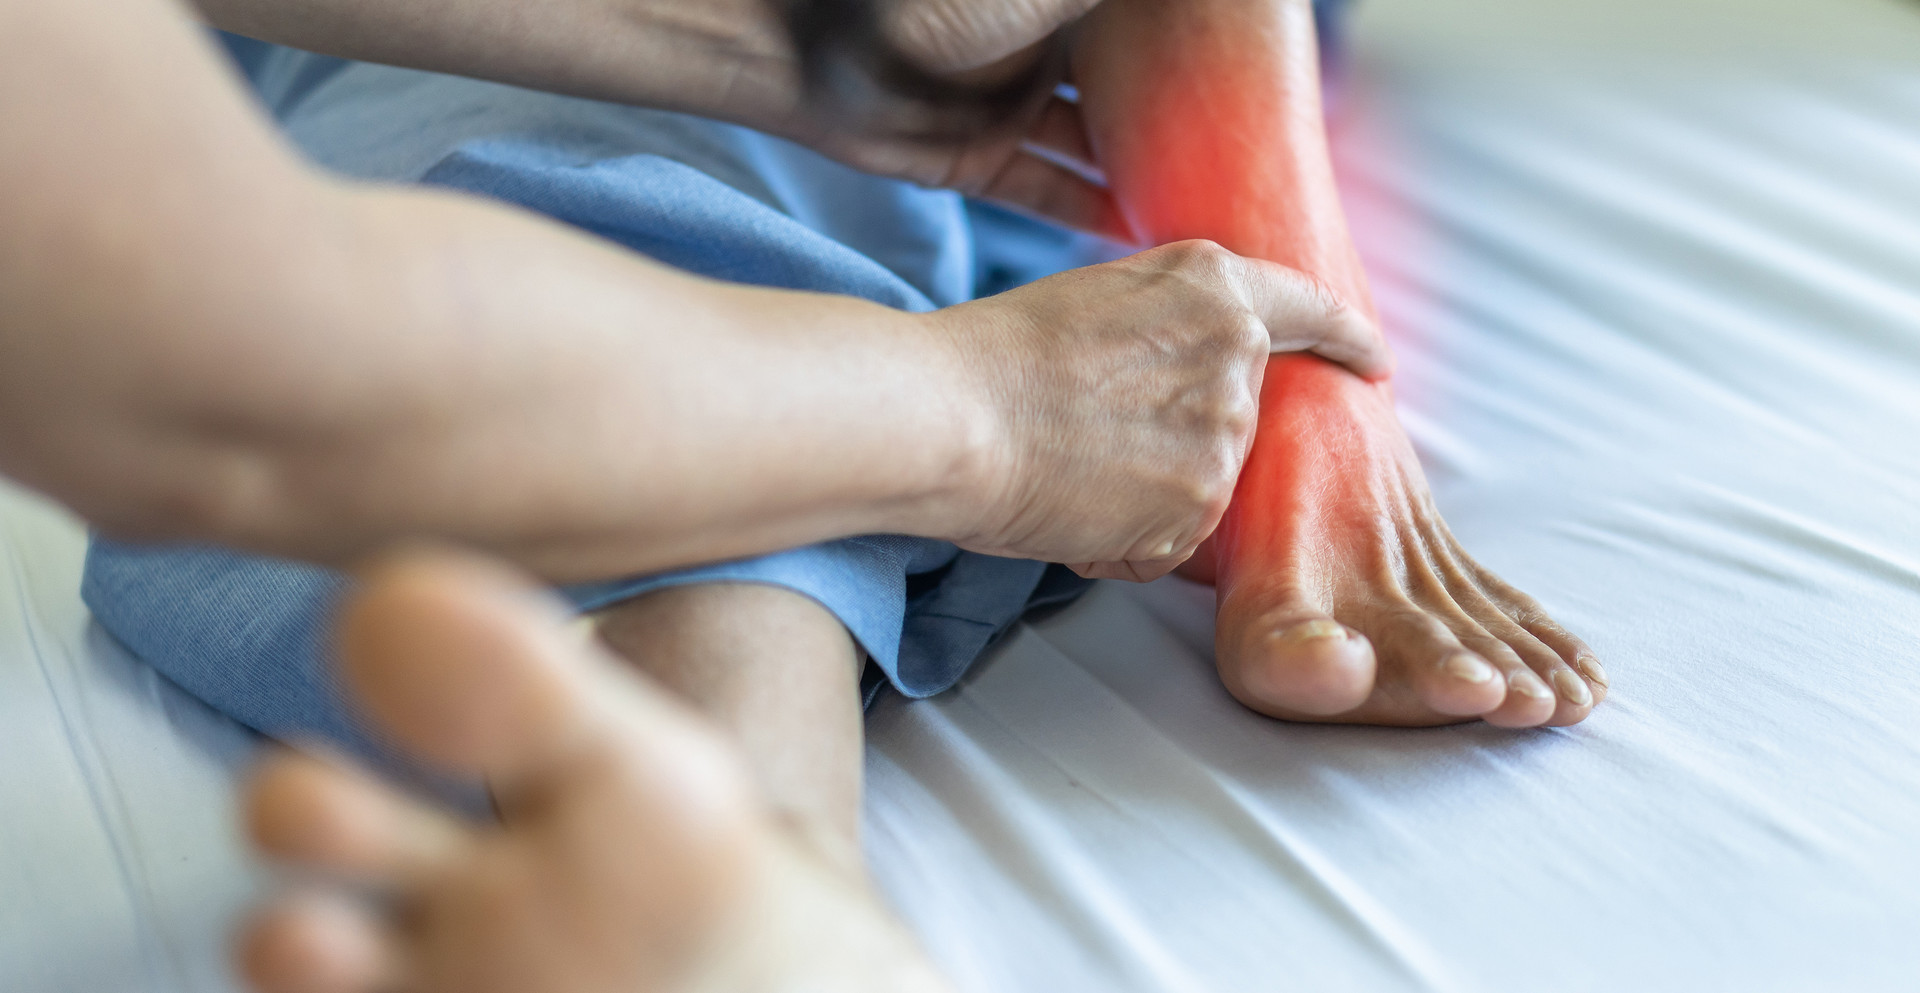 Ankle pain from instability, arthritis,